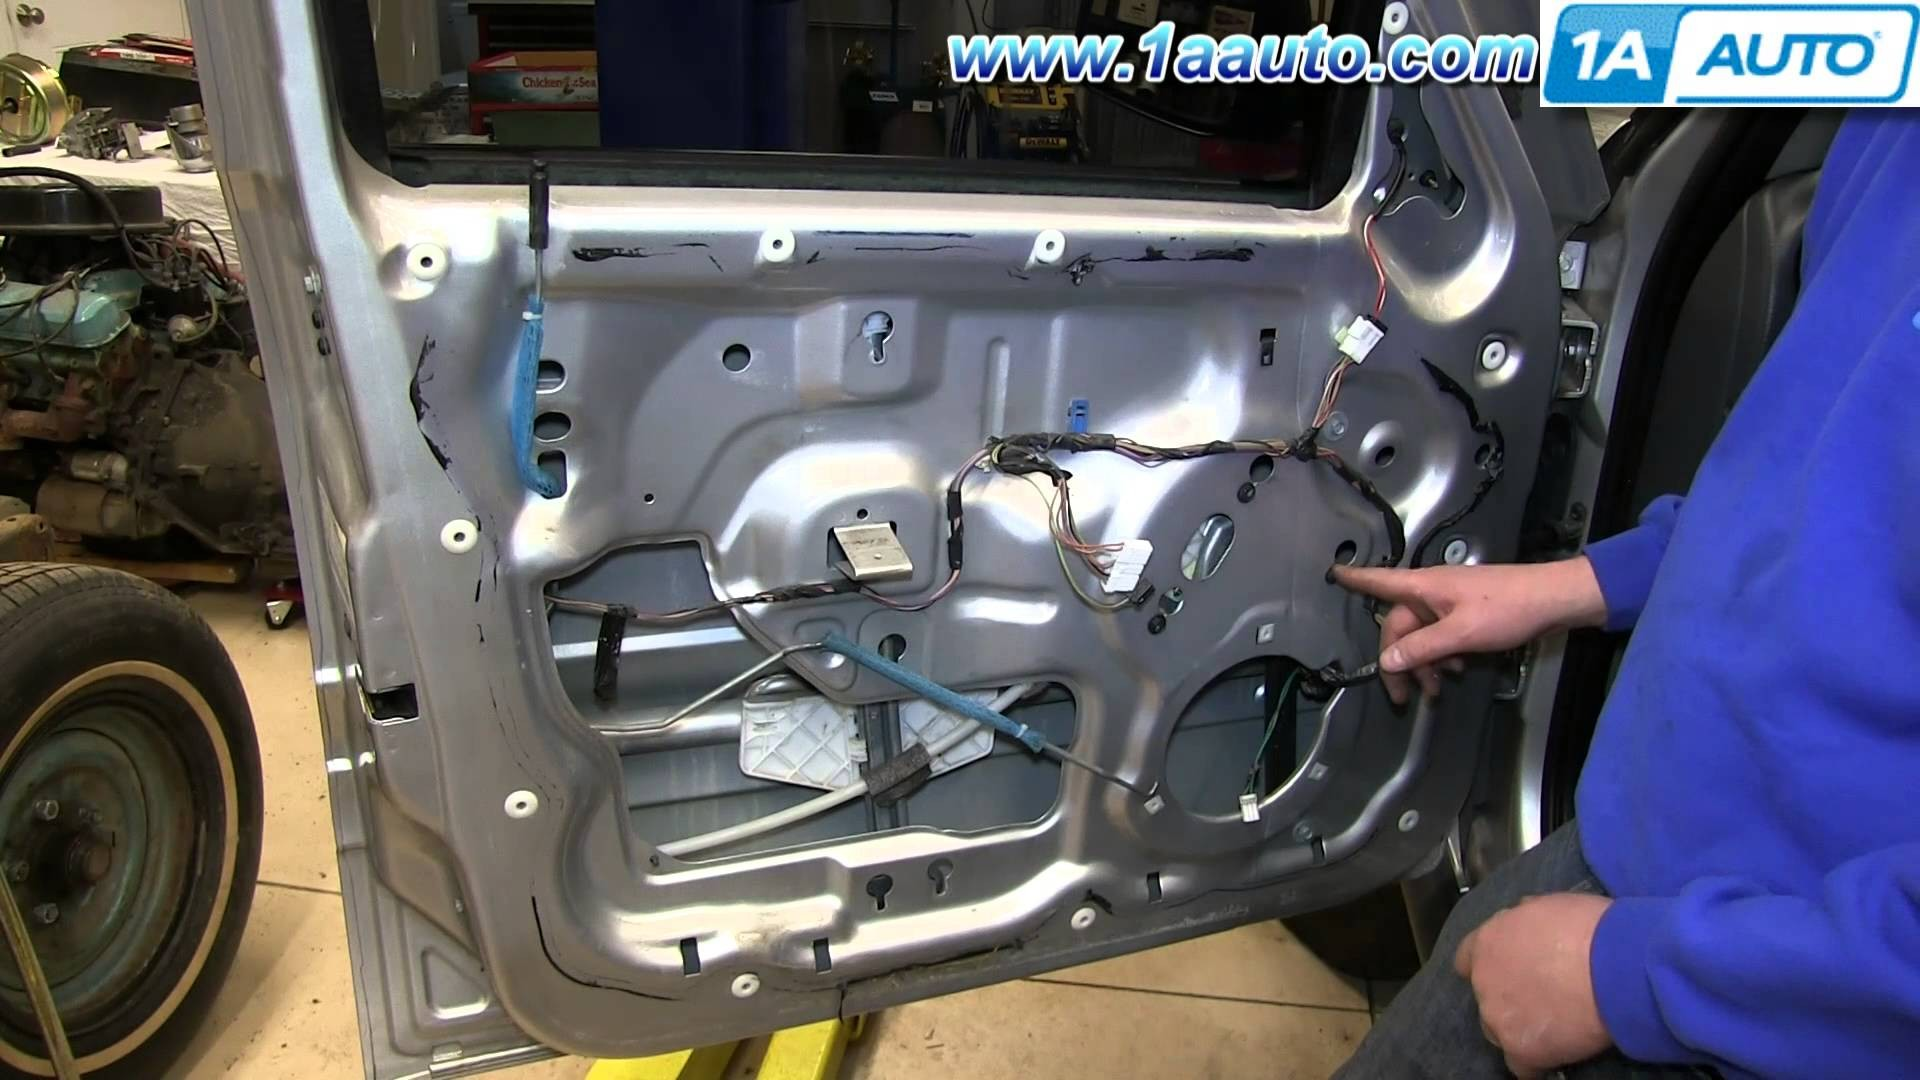 2007 Jeep Commander Engine Diagram How to Install Replace Front Power Window Regulator 2002 07 Jeep Of 2007 Jeep Commander Engine Diagram